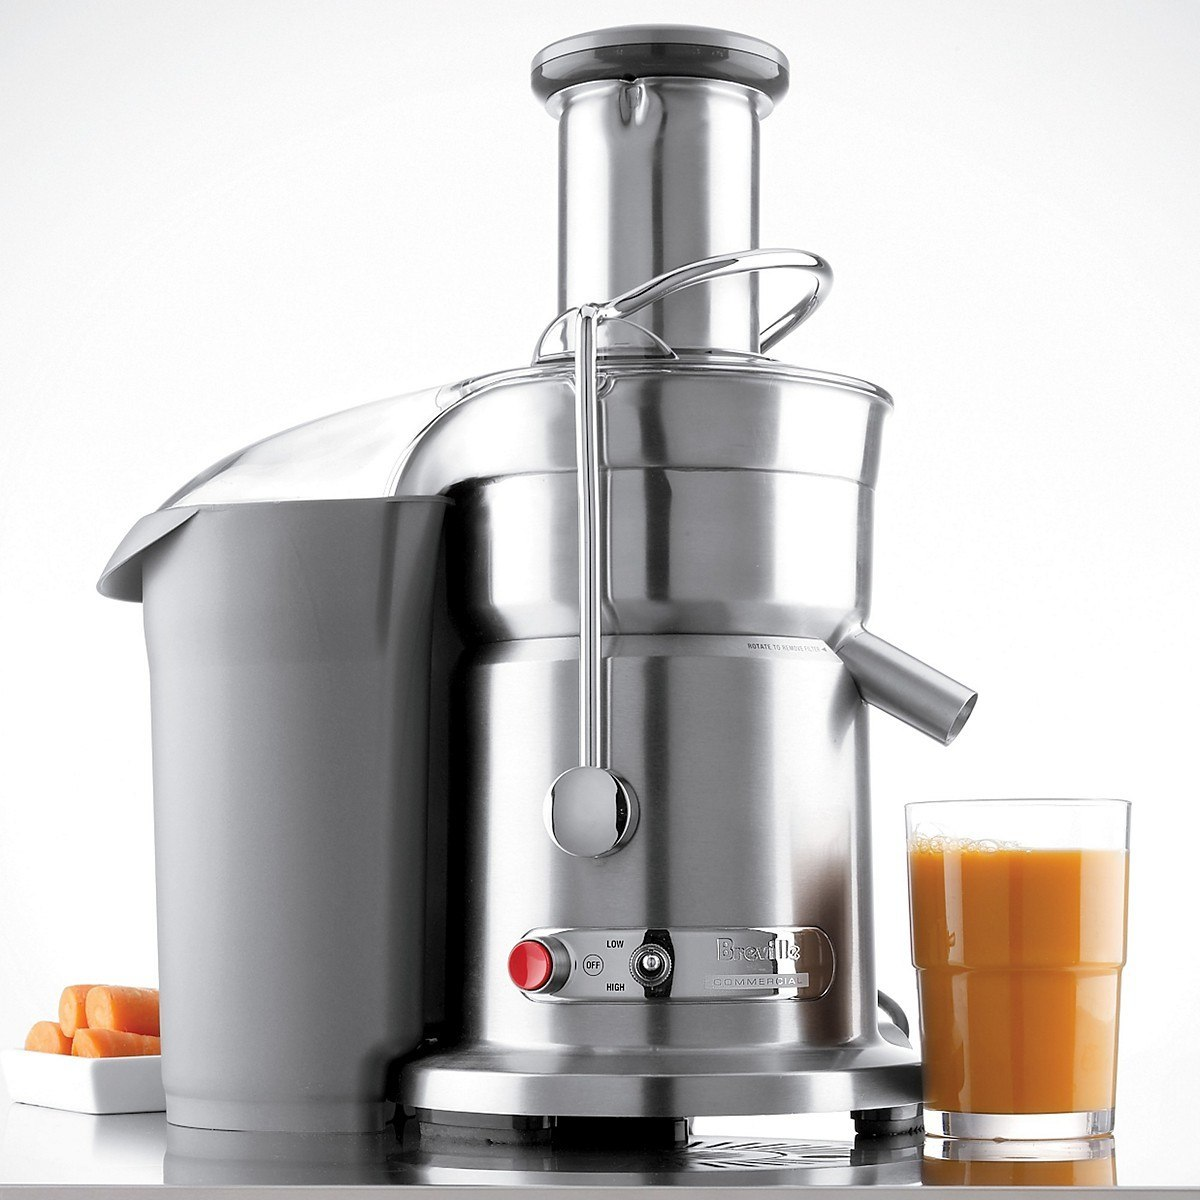 The 5 Best Juicer Machines to Make Healthy Juices